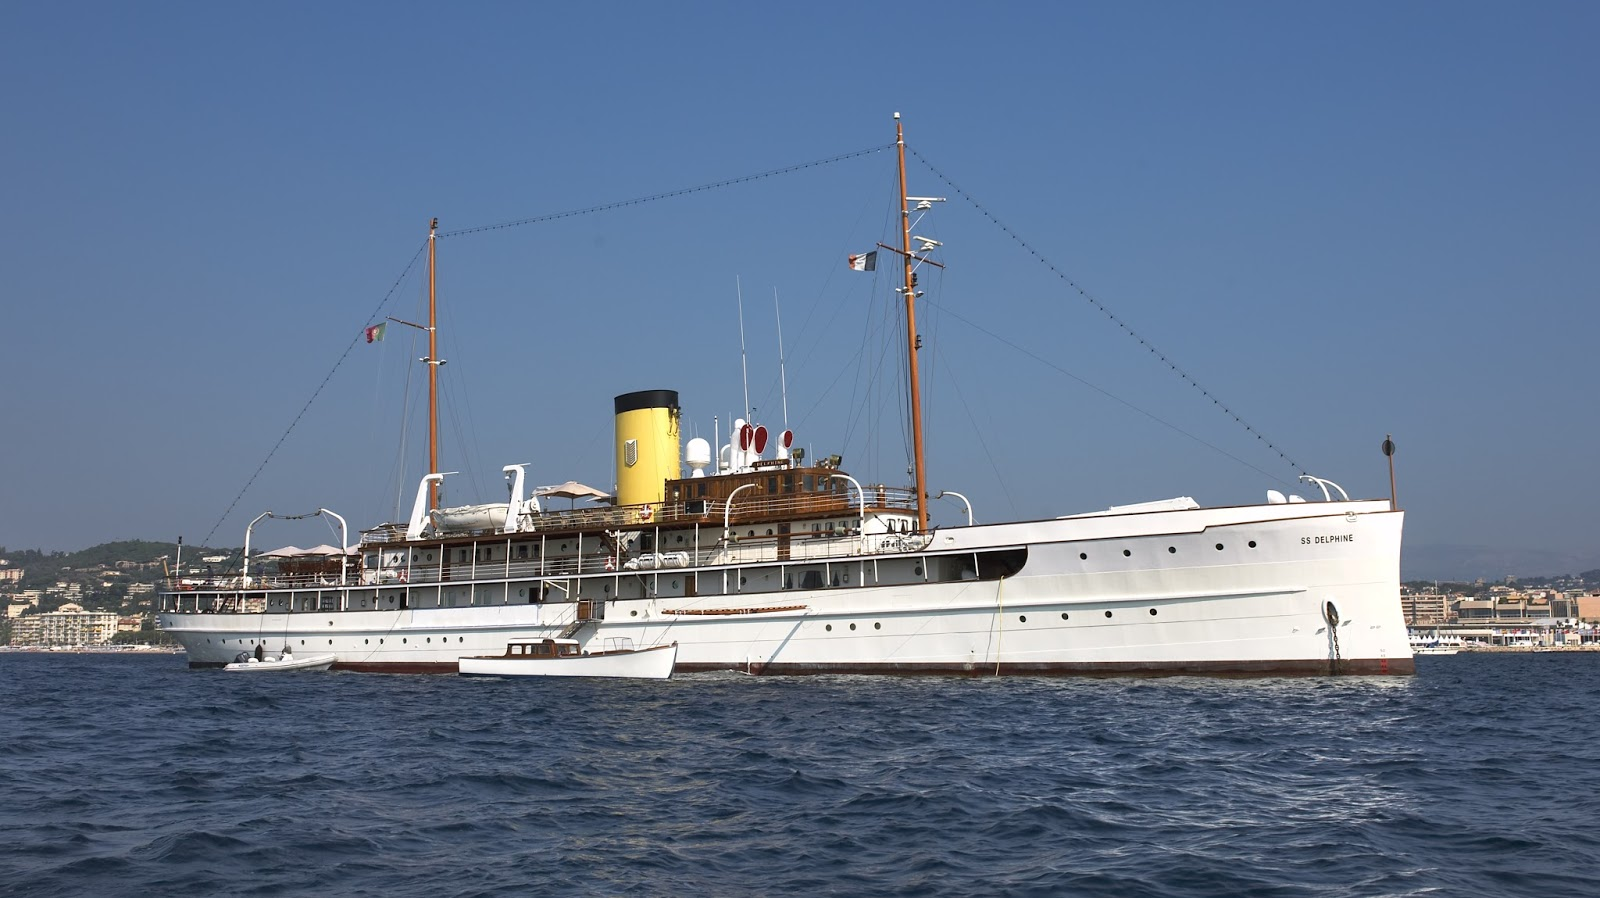 The Steam Yacht Delphine Goes on the Market Again - The Howorths | The Howorths